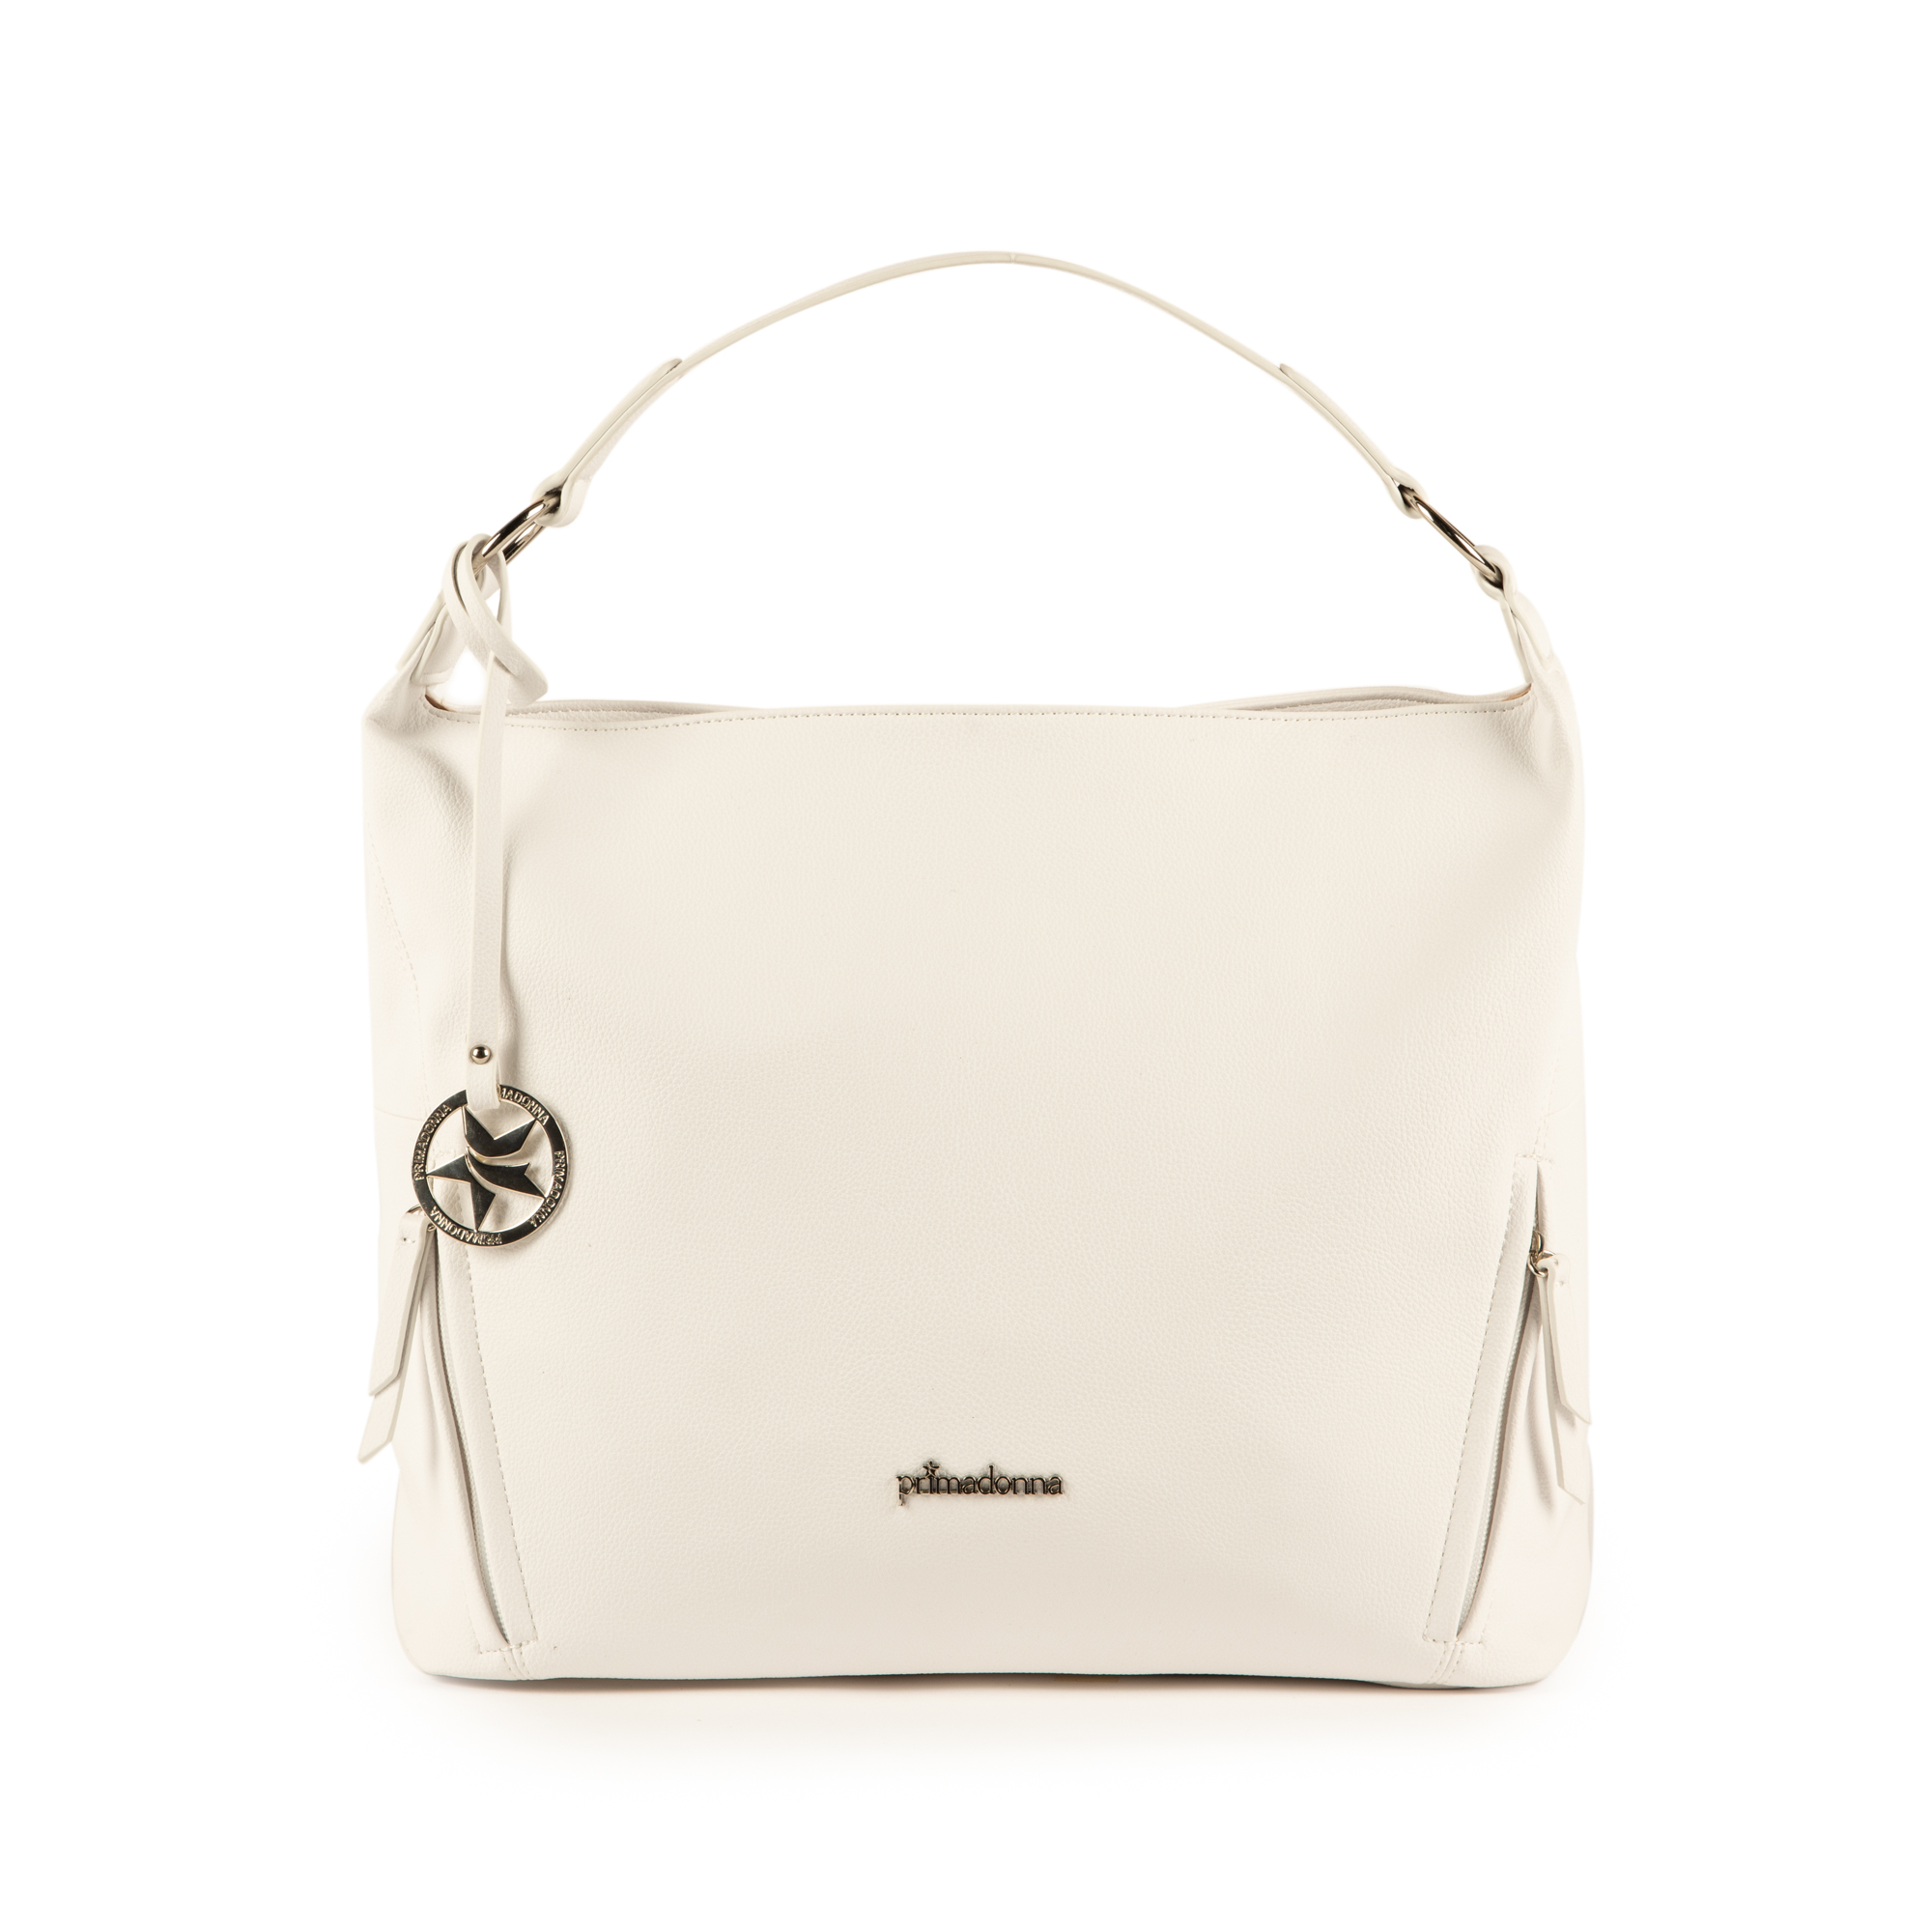 Maxi-bag de ecopiel en color blanco